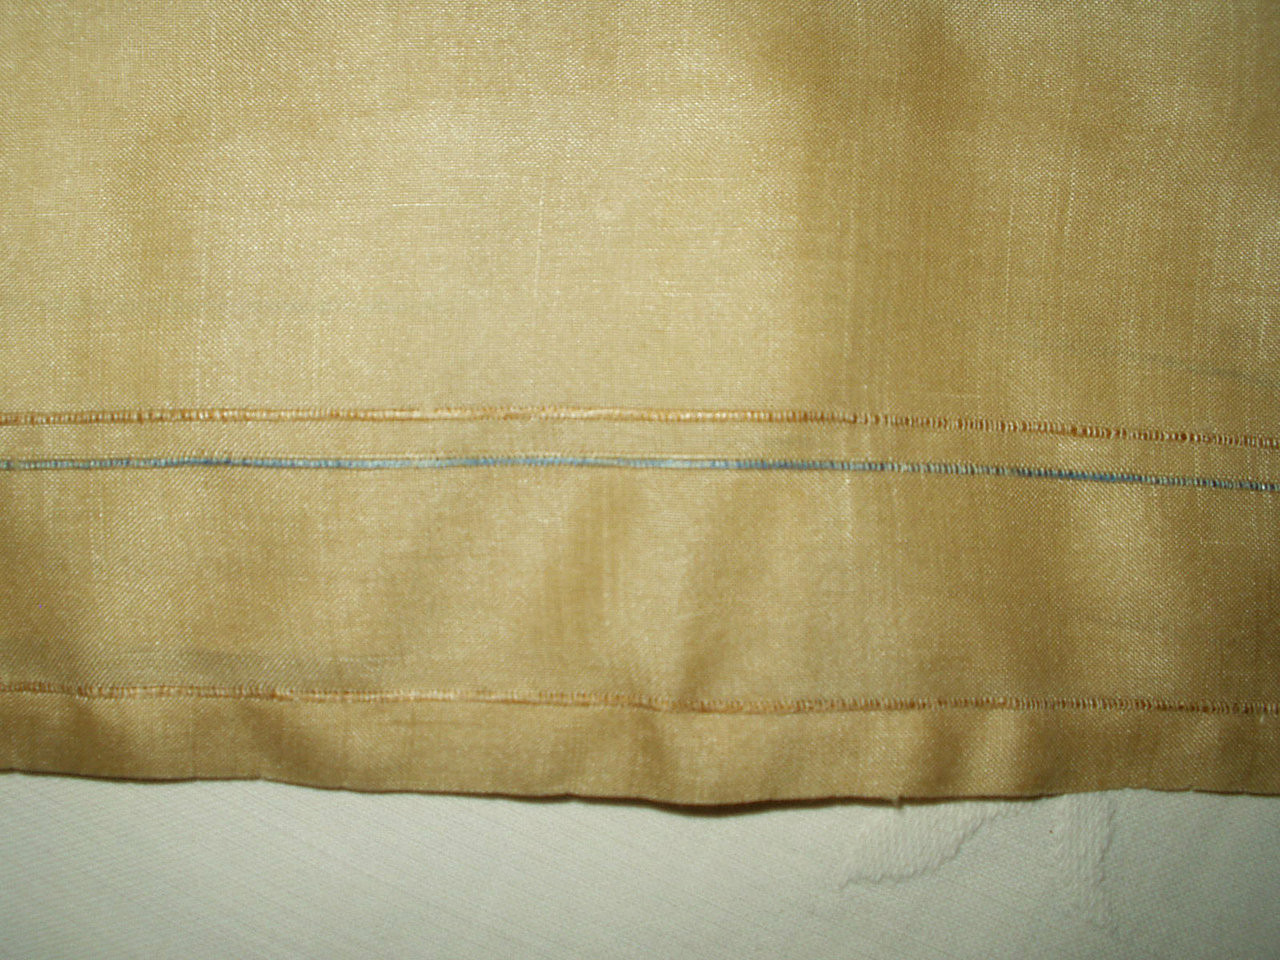 Vintage 1920 1930 Pongee Raw Silk Drawnwork Colored Thread Handkerchief Hankie